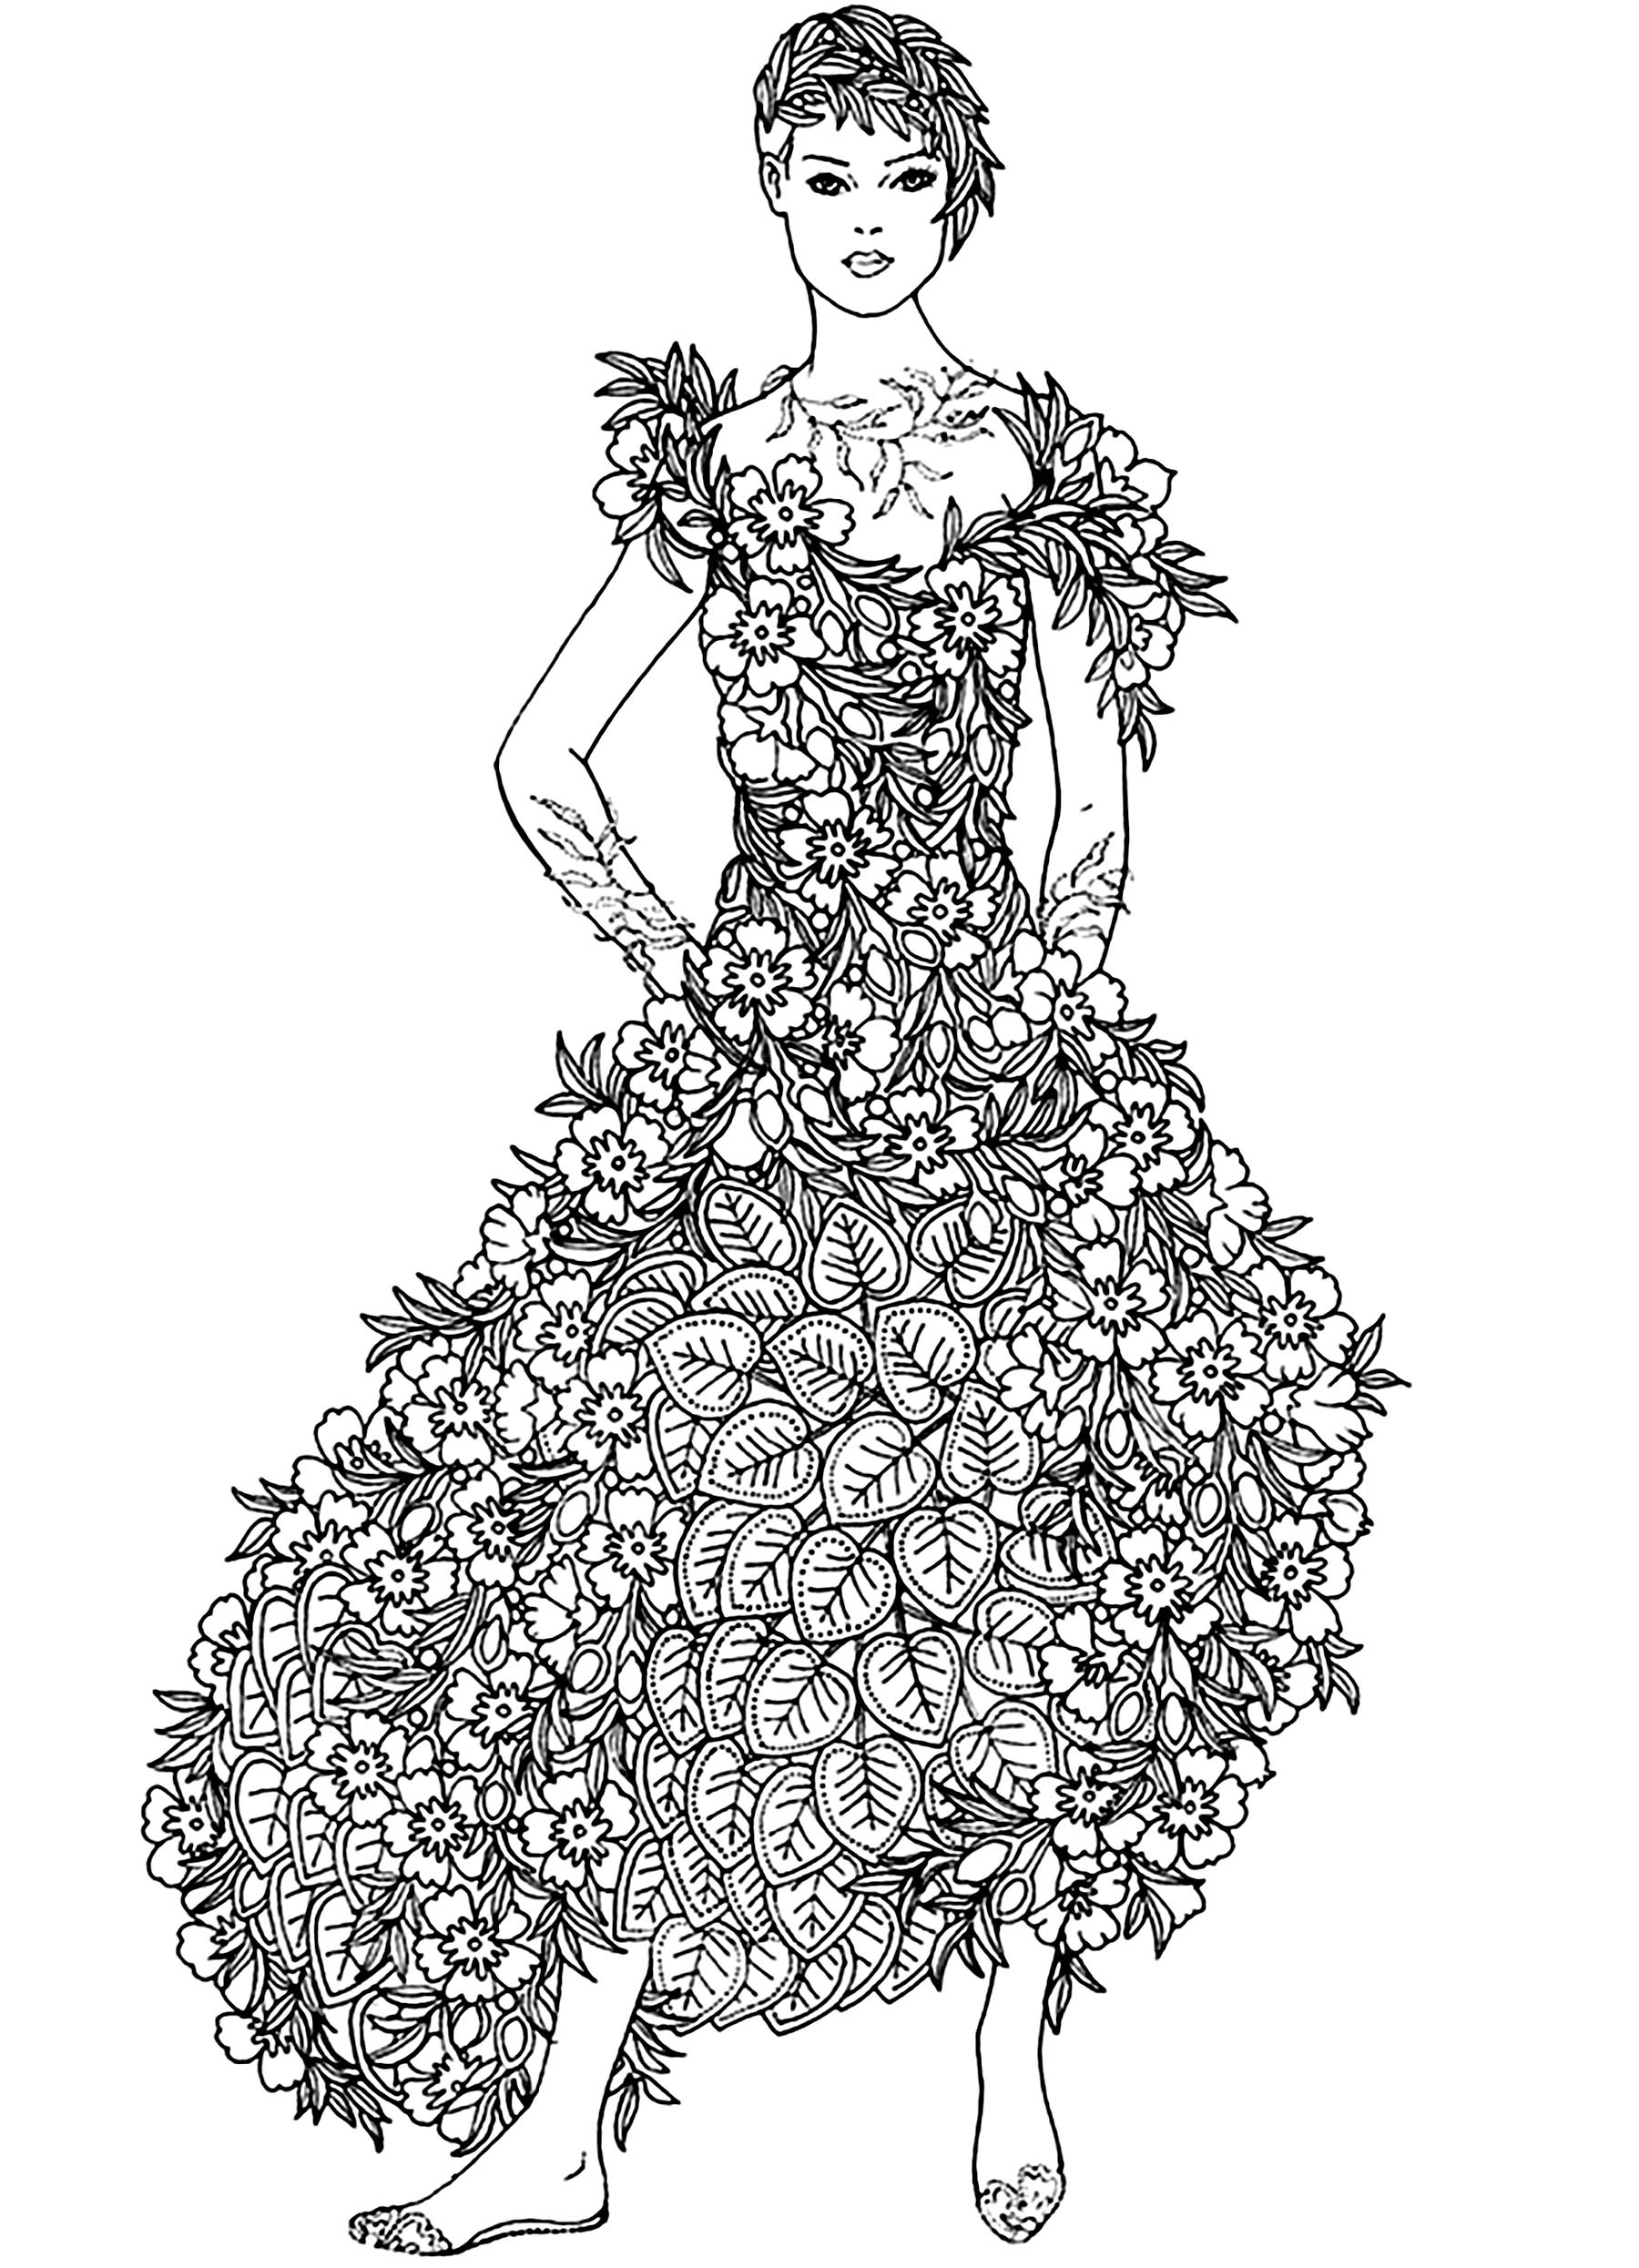 Incredible dress made with only true flowers